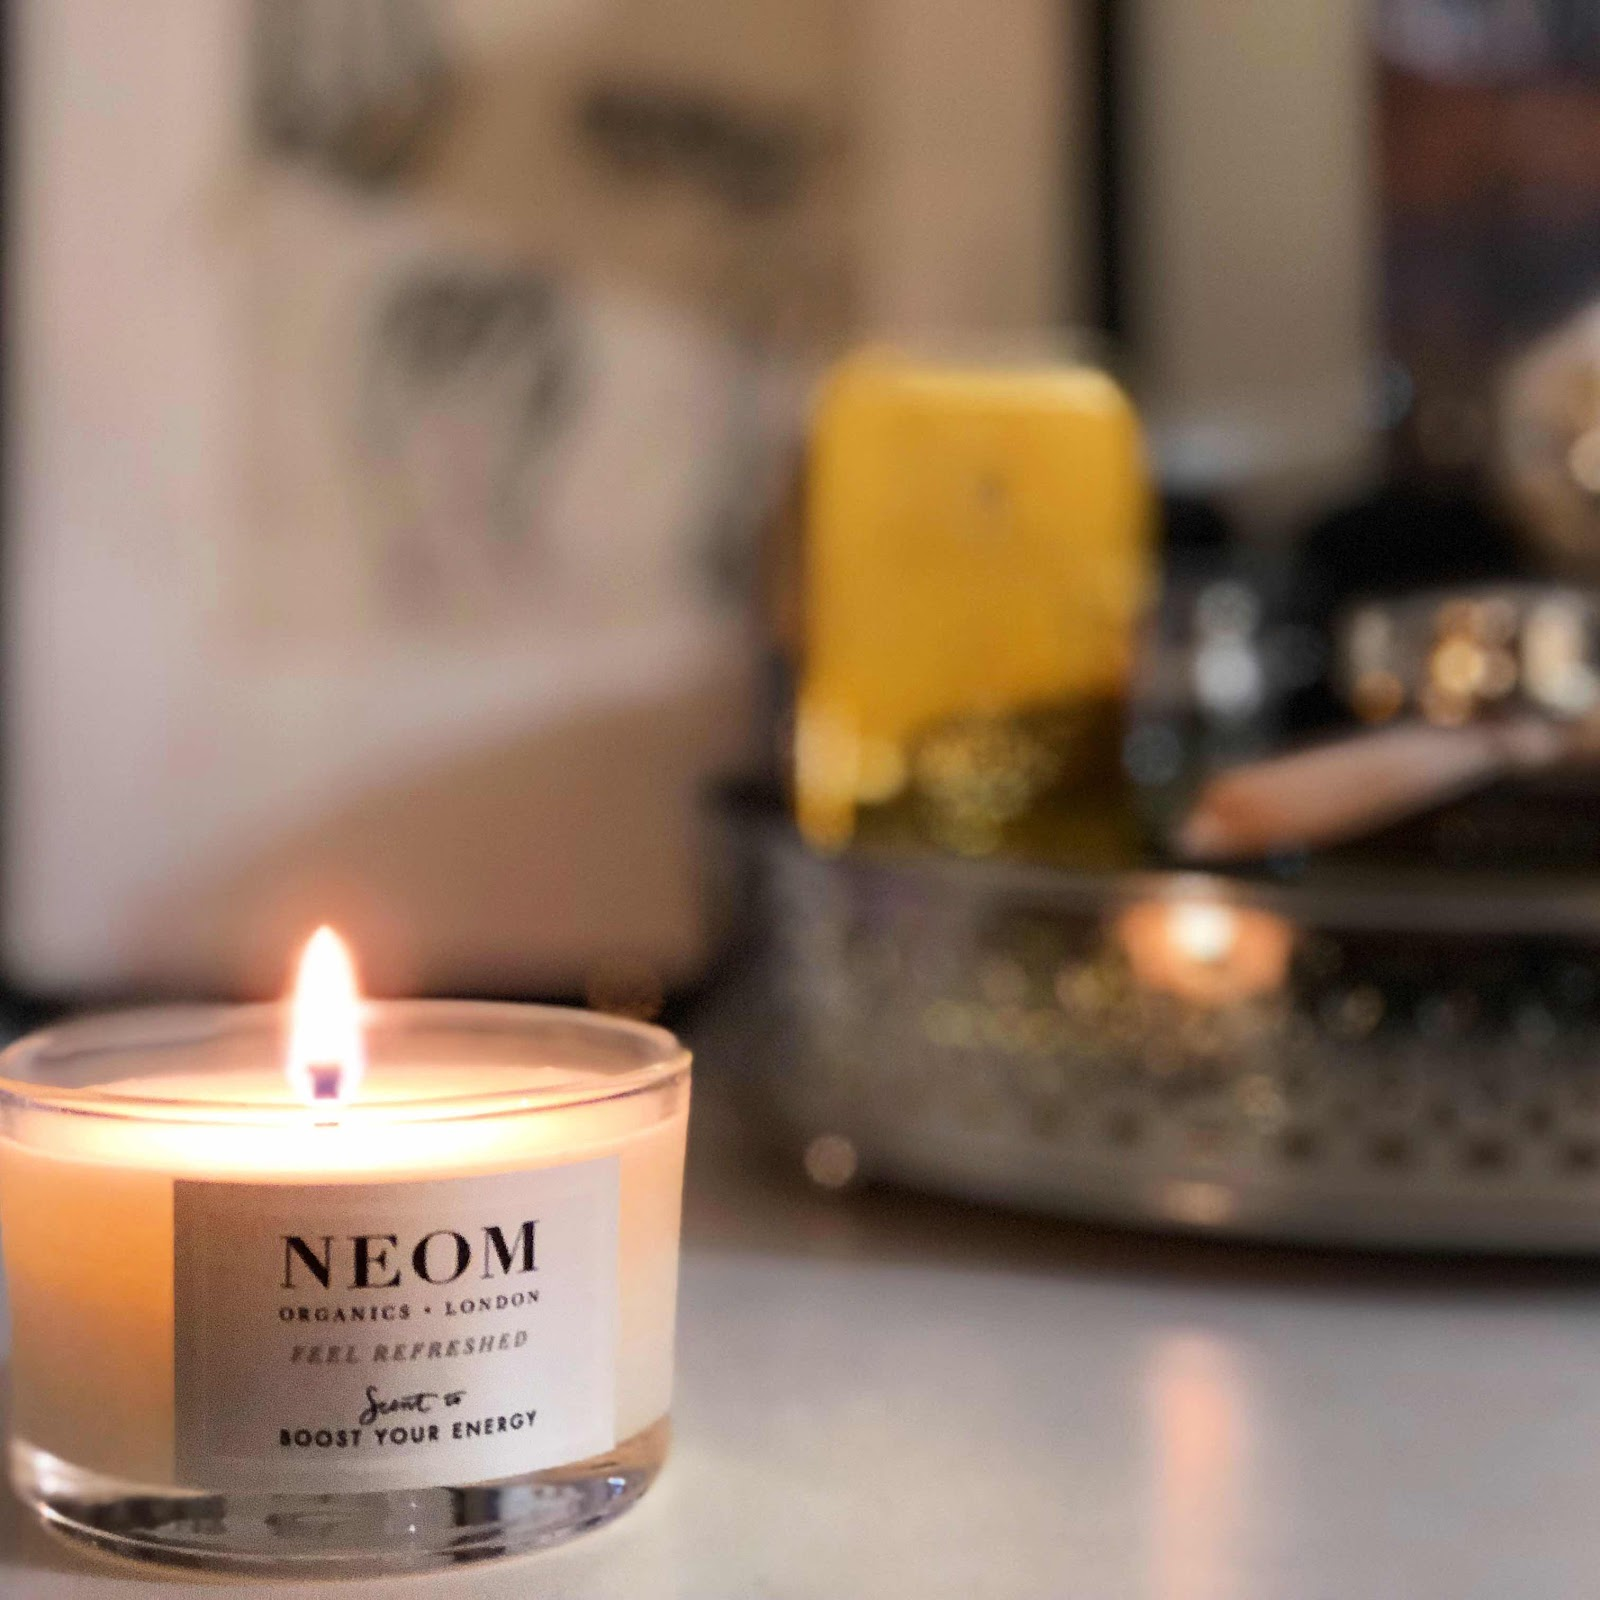 london-lifestyle-blog-how-to-relax-and-recharge-neom-boost-your-energy